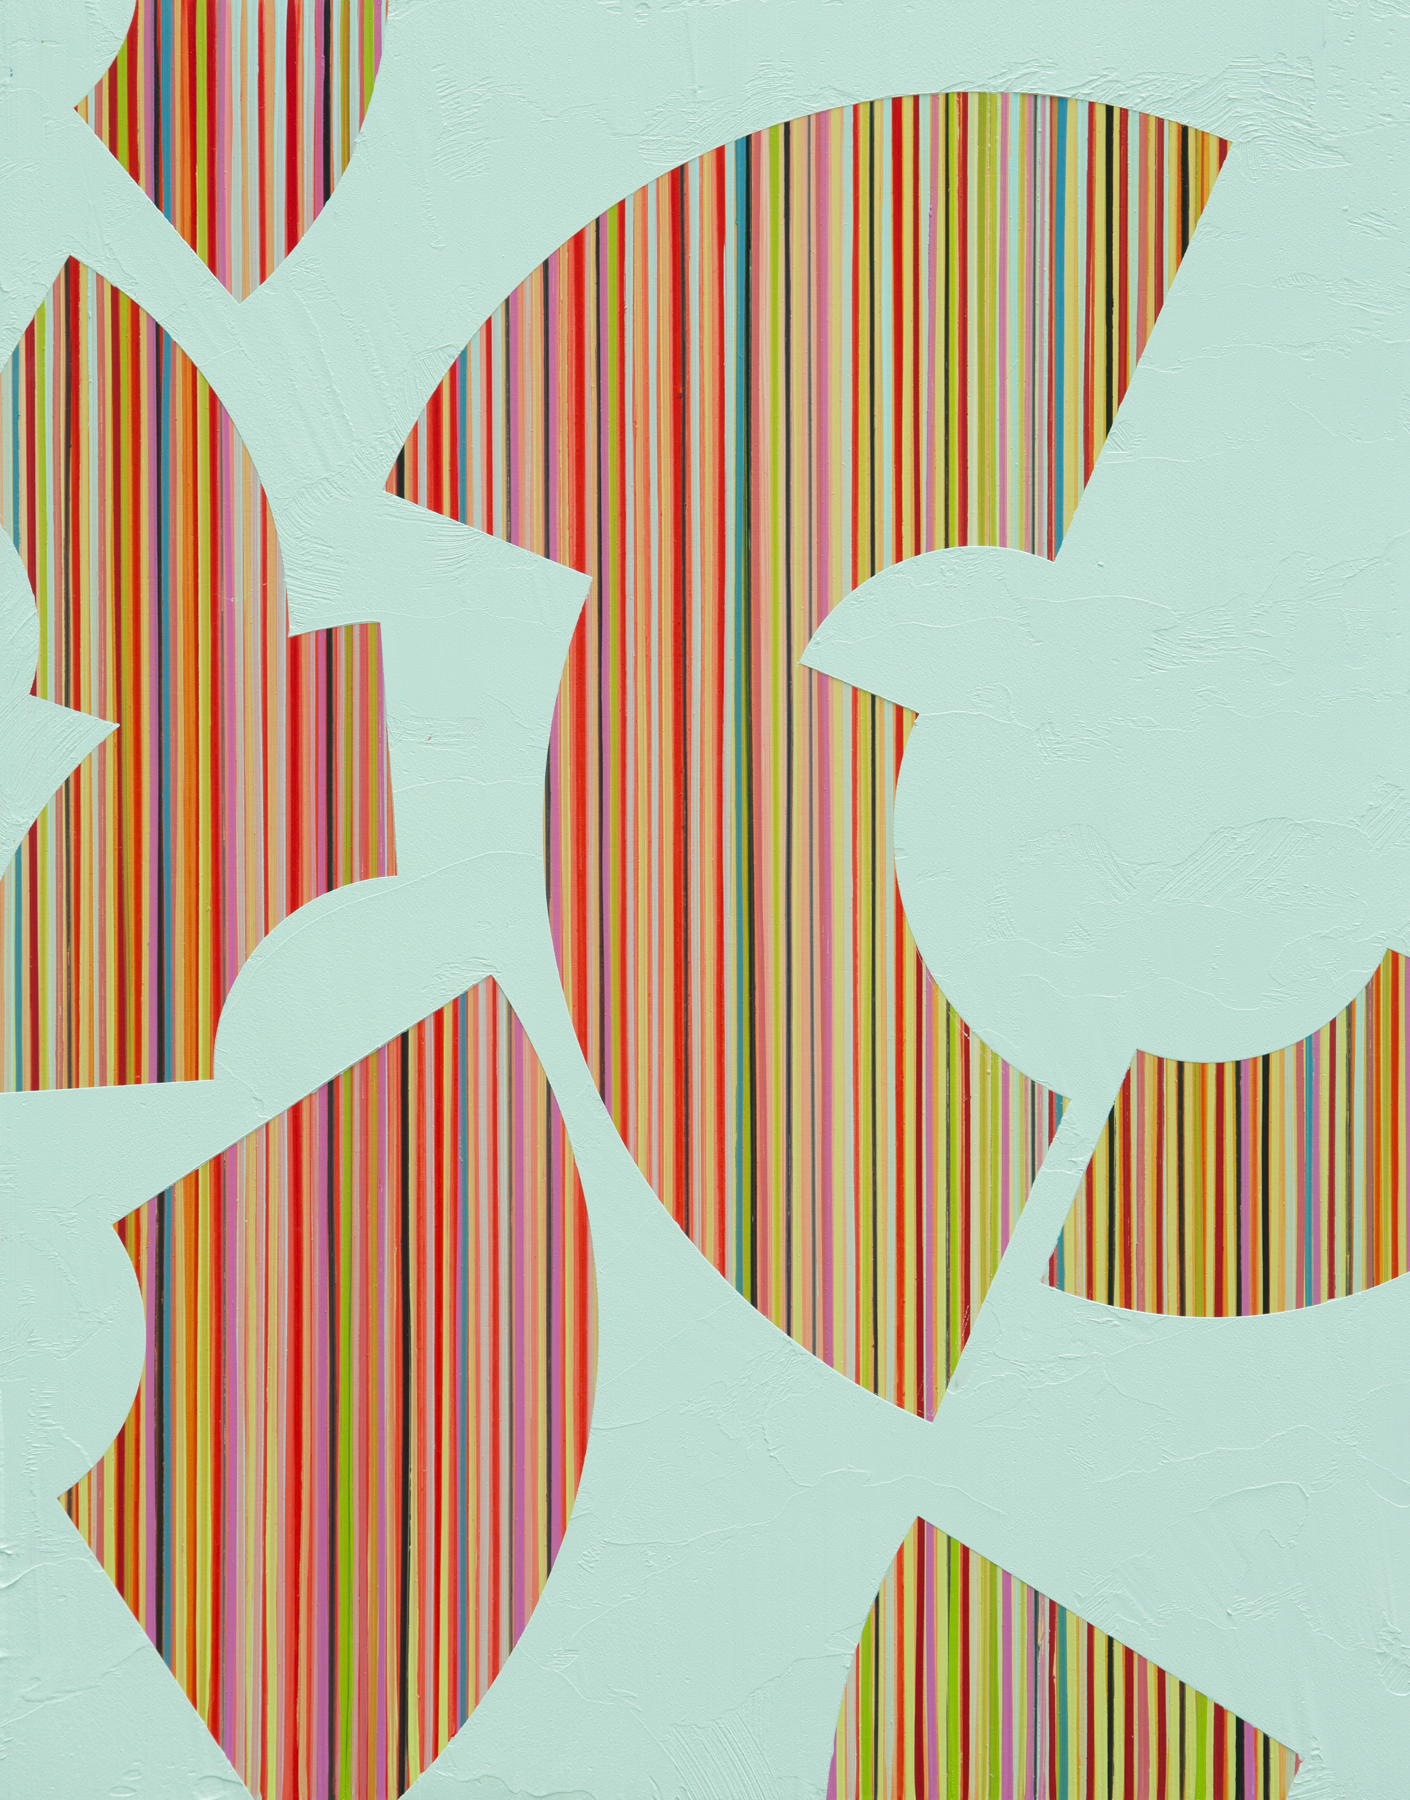 Karl Connolly, painting, abstract, modern, stripe, contemporary, baltimore, artist, artists, gallery, abstraction